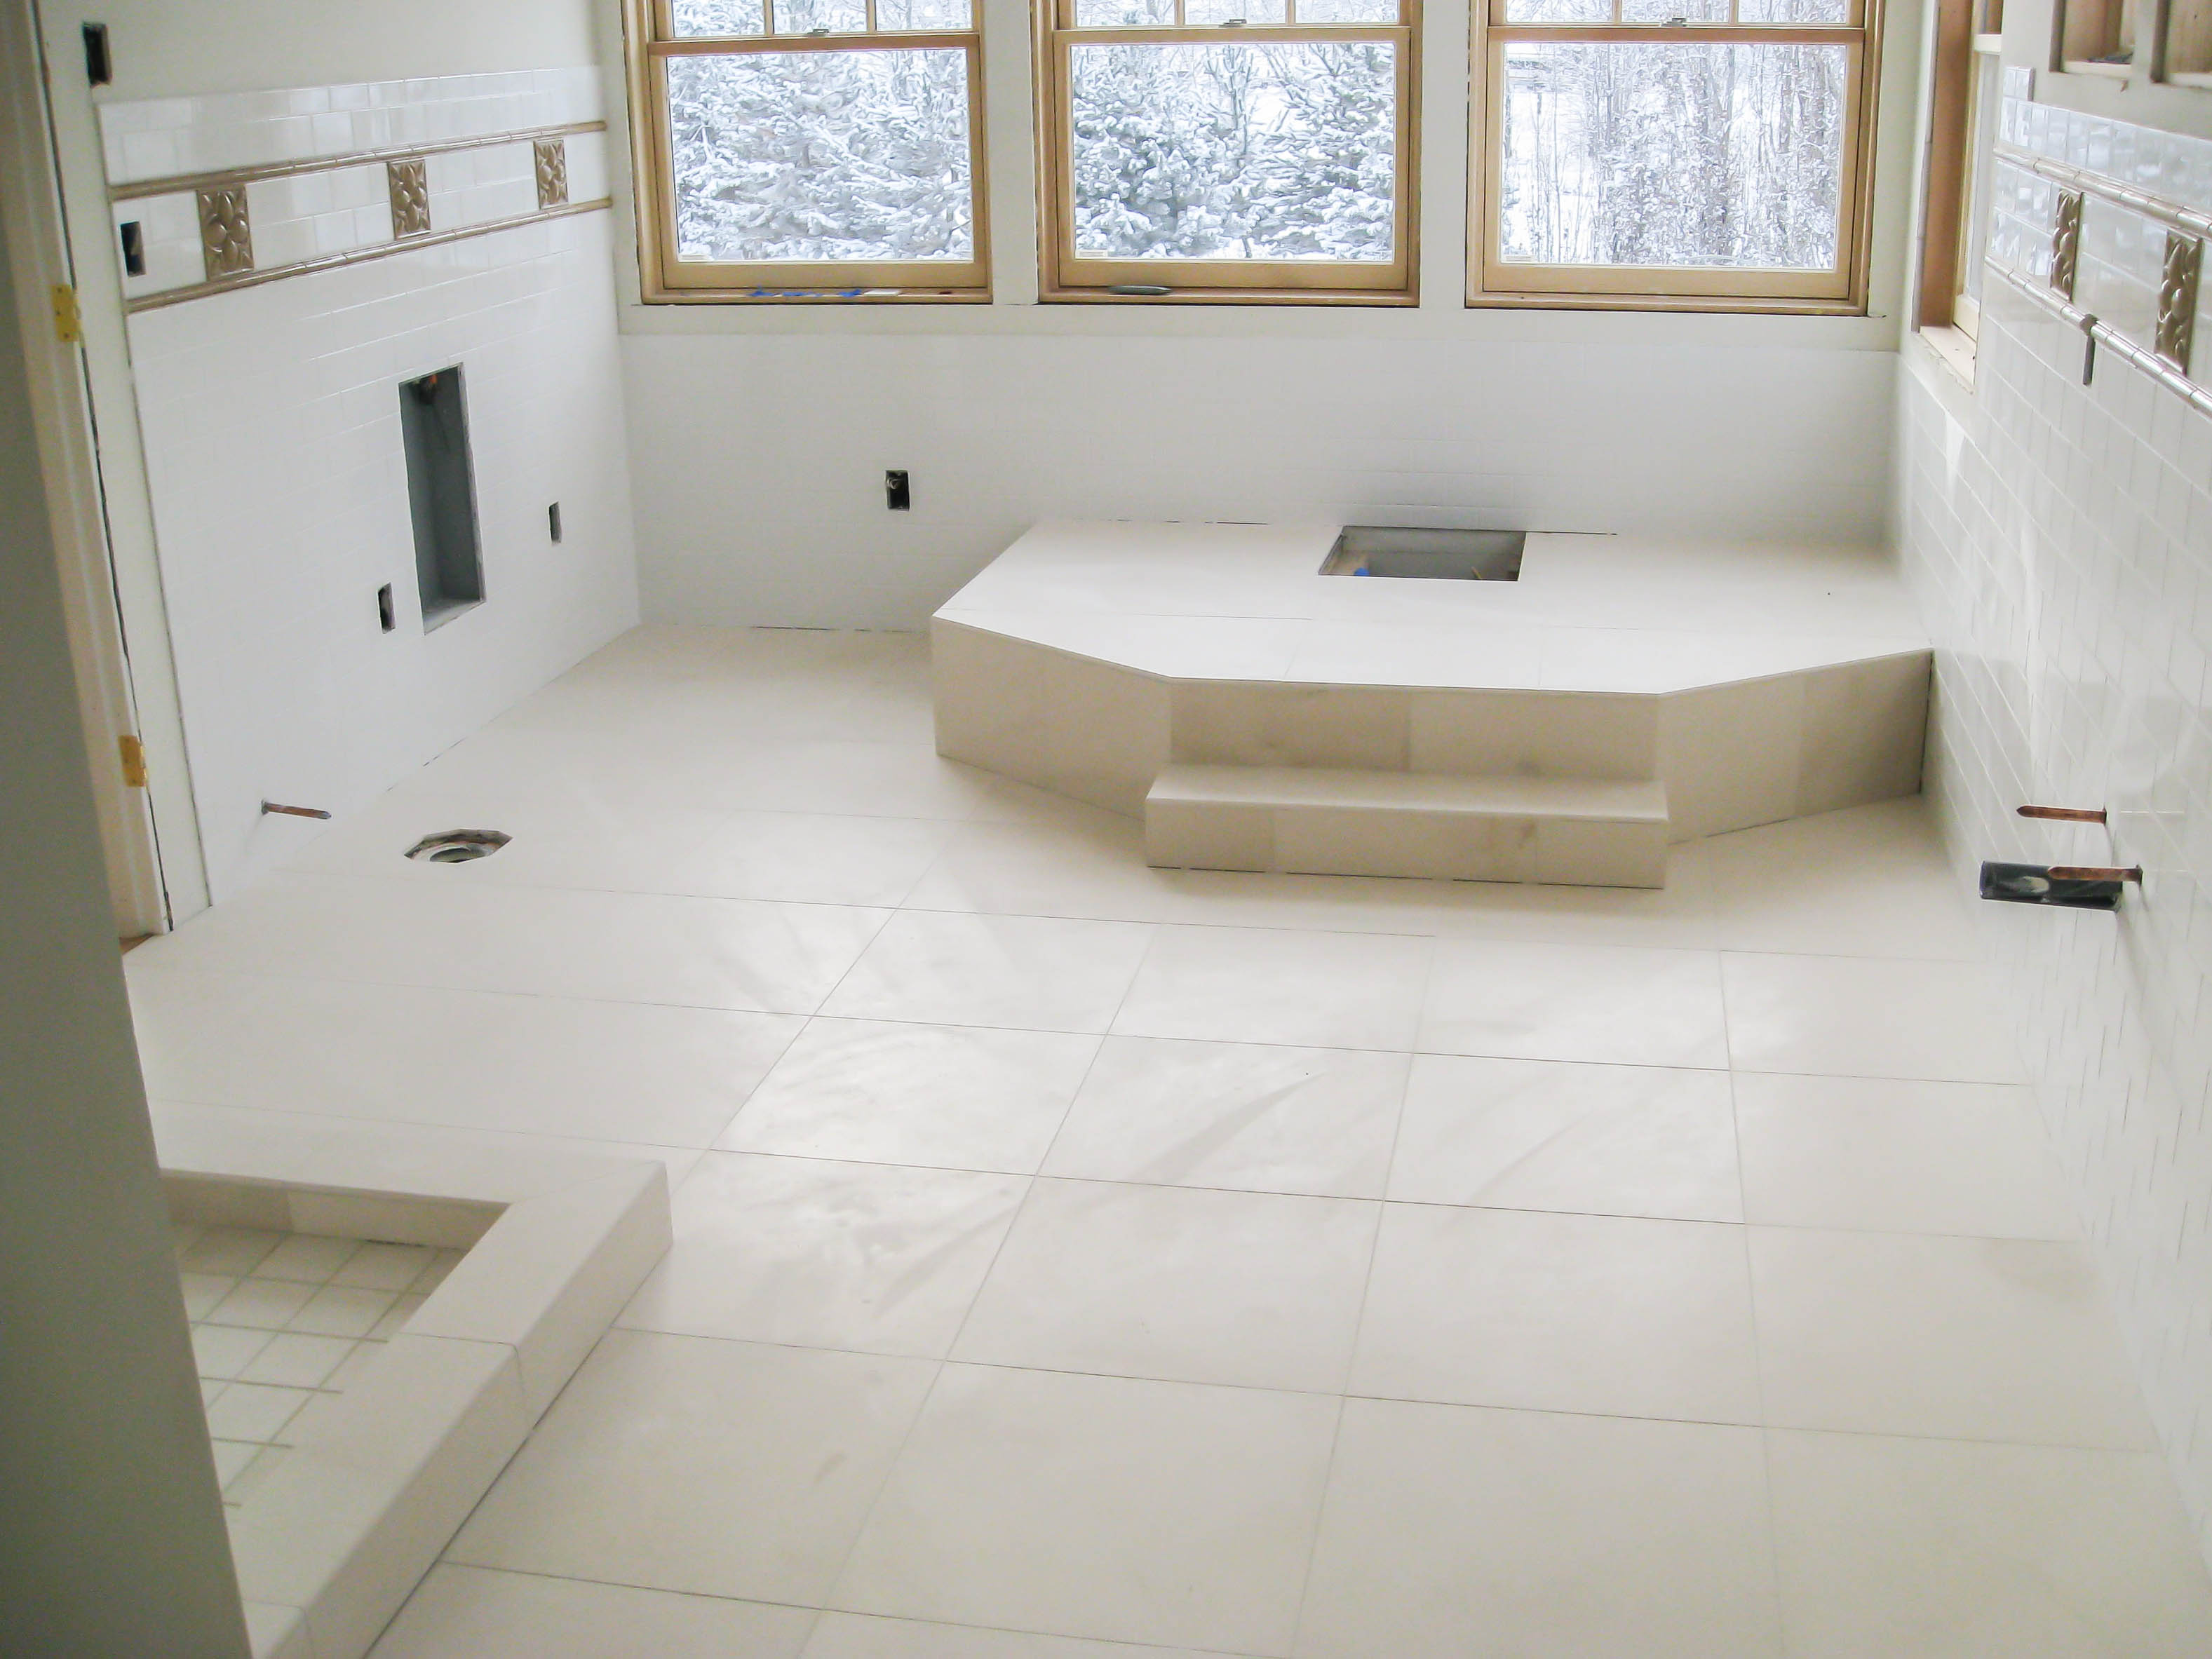 bathroom-flooring-bathroom-flooring-bathroom-floors-seattle-tile-contractor-irc-tile-services-bathroom-picture-bathroom-flooring